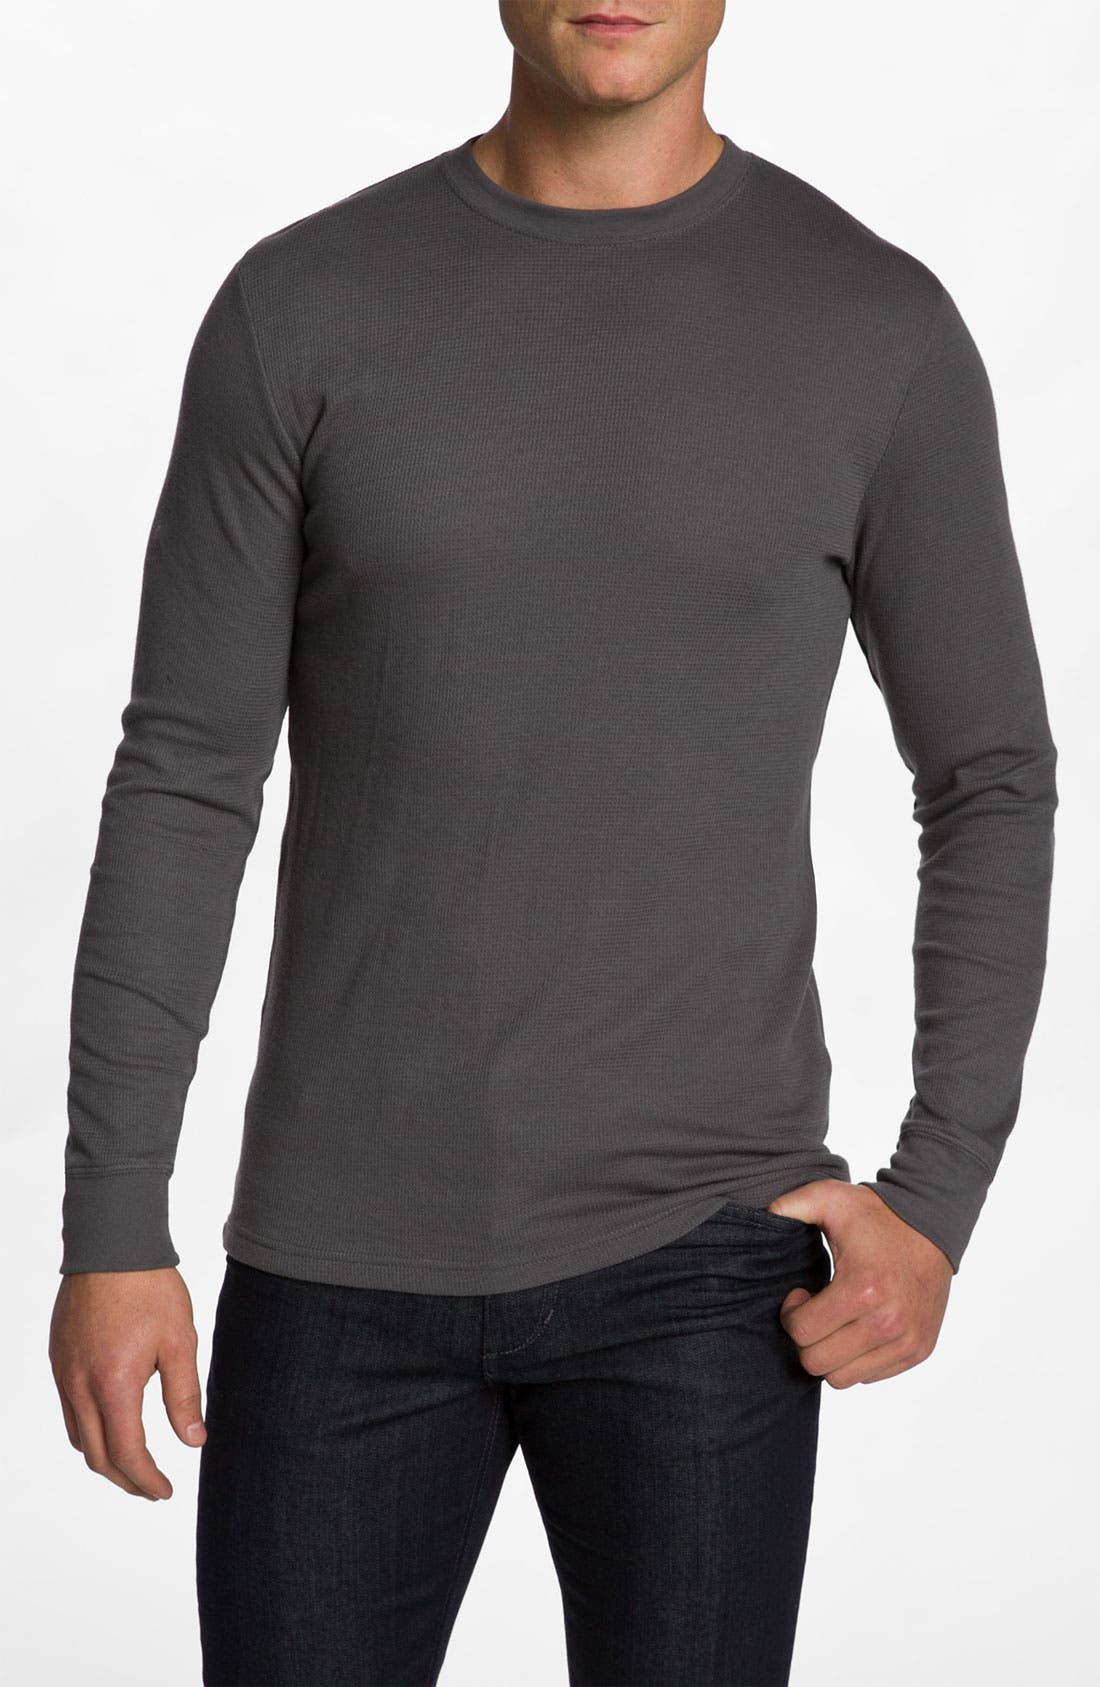 Alternate Image 1 Selected - Hurley 'Staple' Crewneck Thermal Shirt